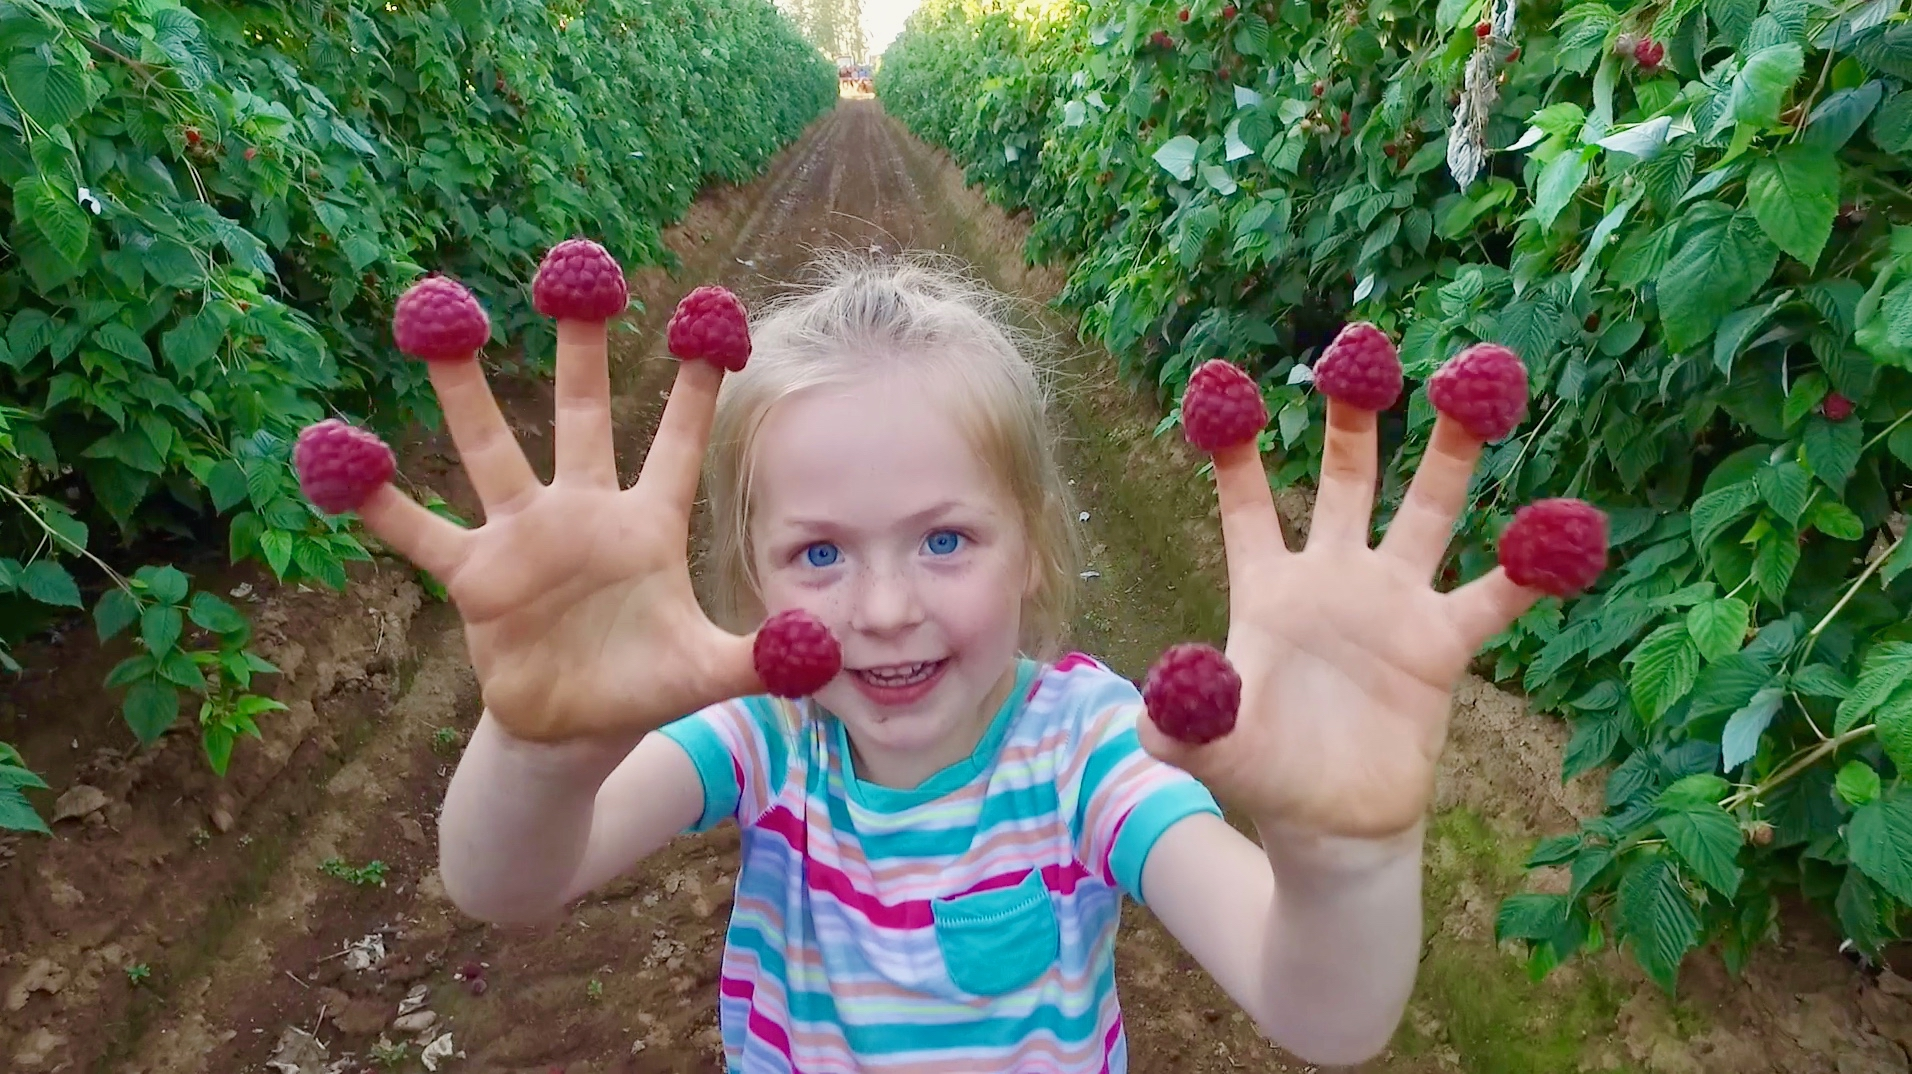 young girl with raspberries on fingers in raspberry field